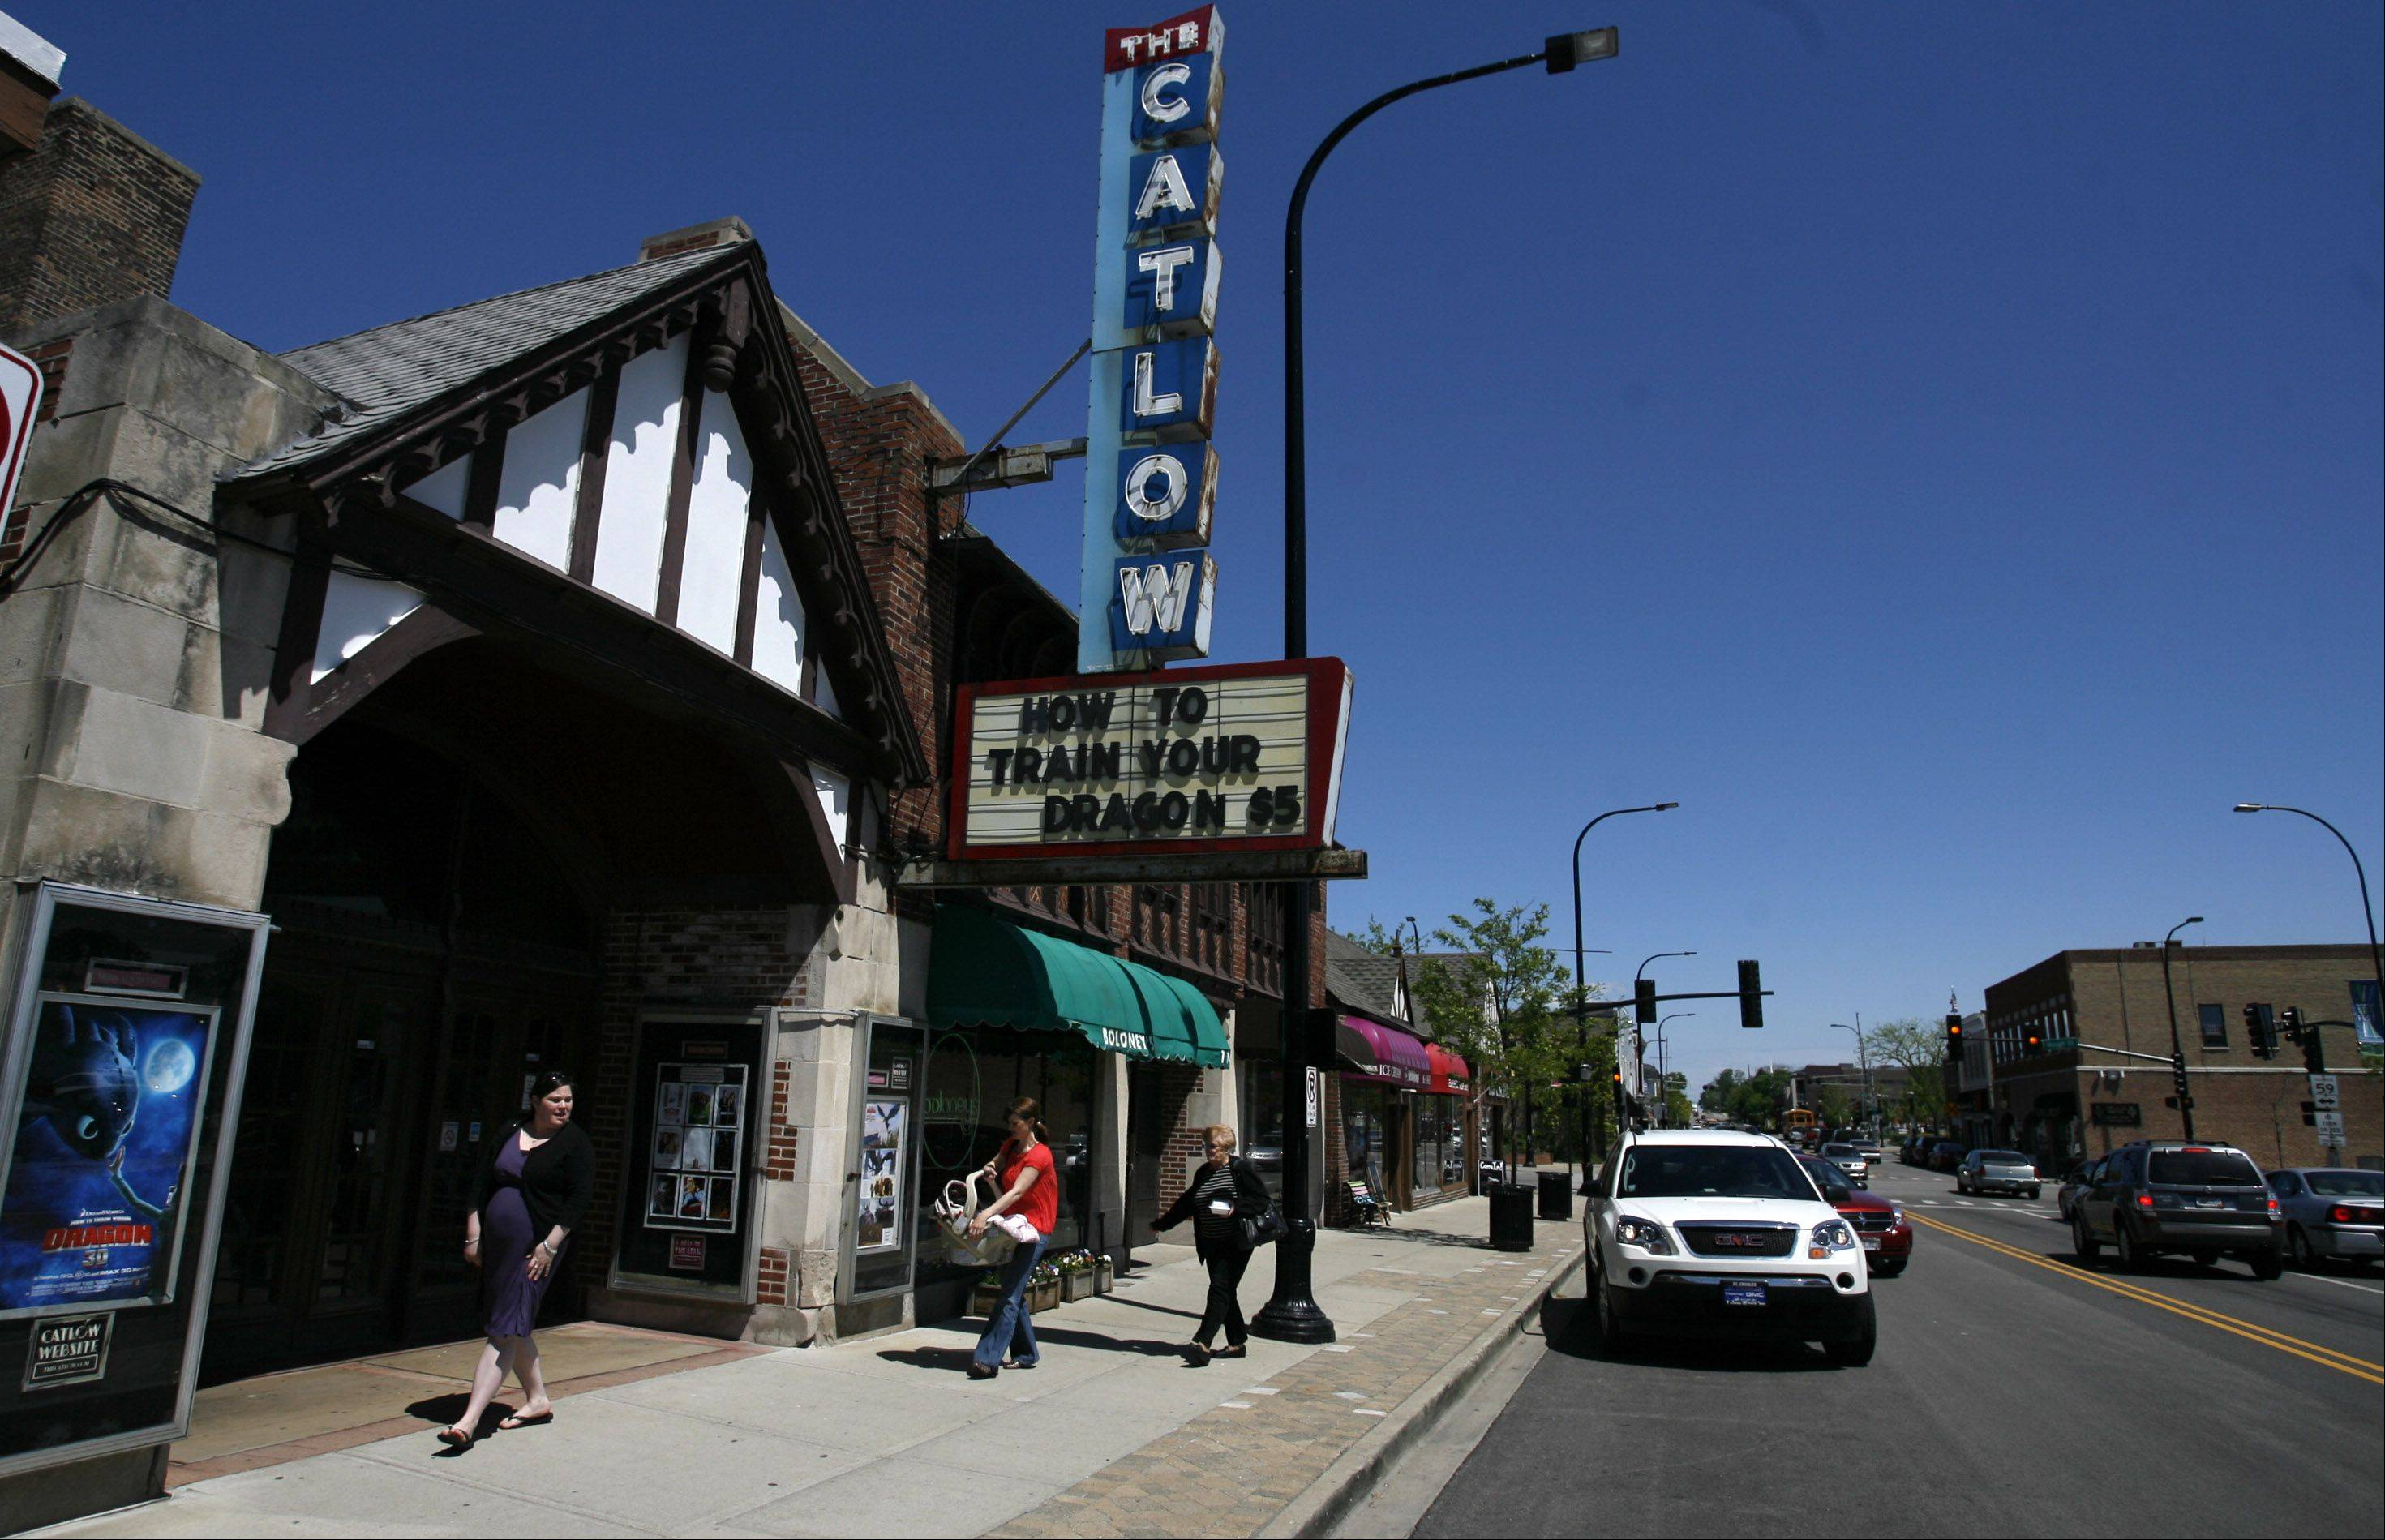 The historic Catlow theater in Barrington is seeking patrons� help to raise the $100,000 it needs for a now-or-never conversion from film to digital projection.